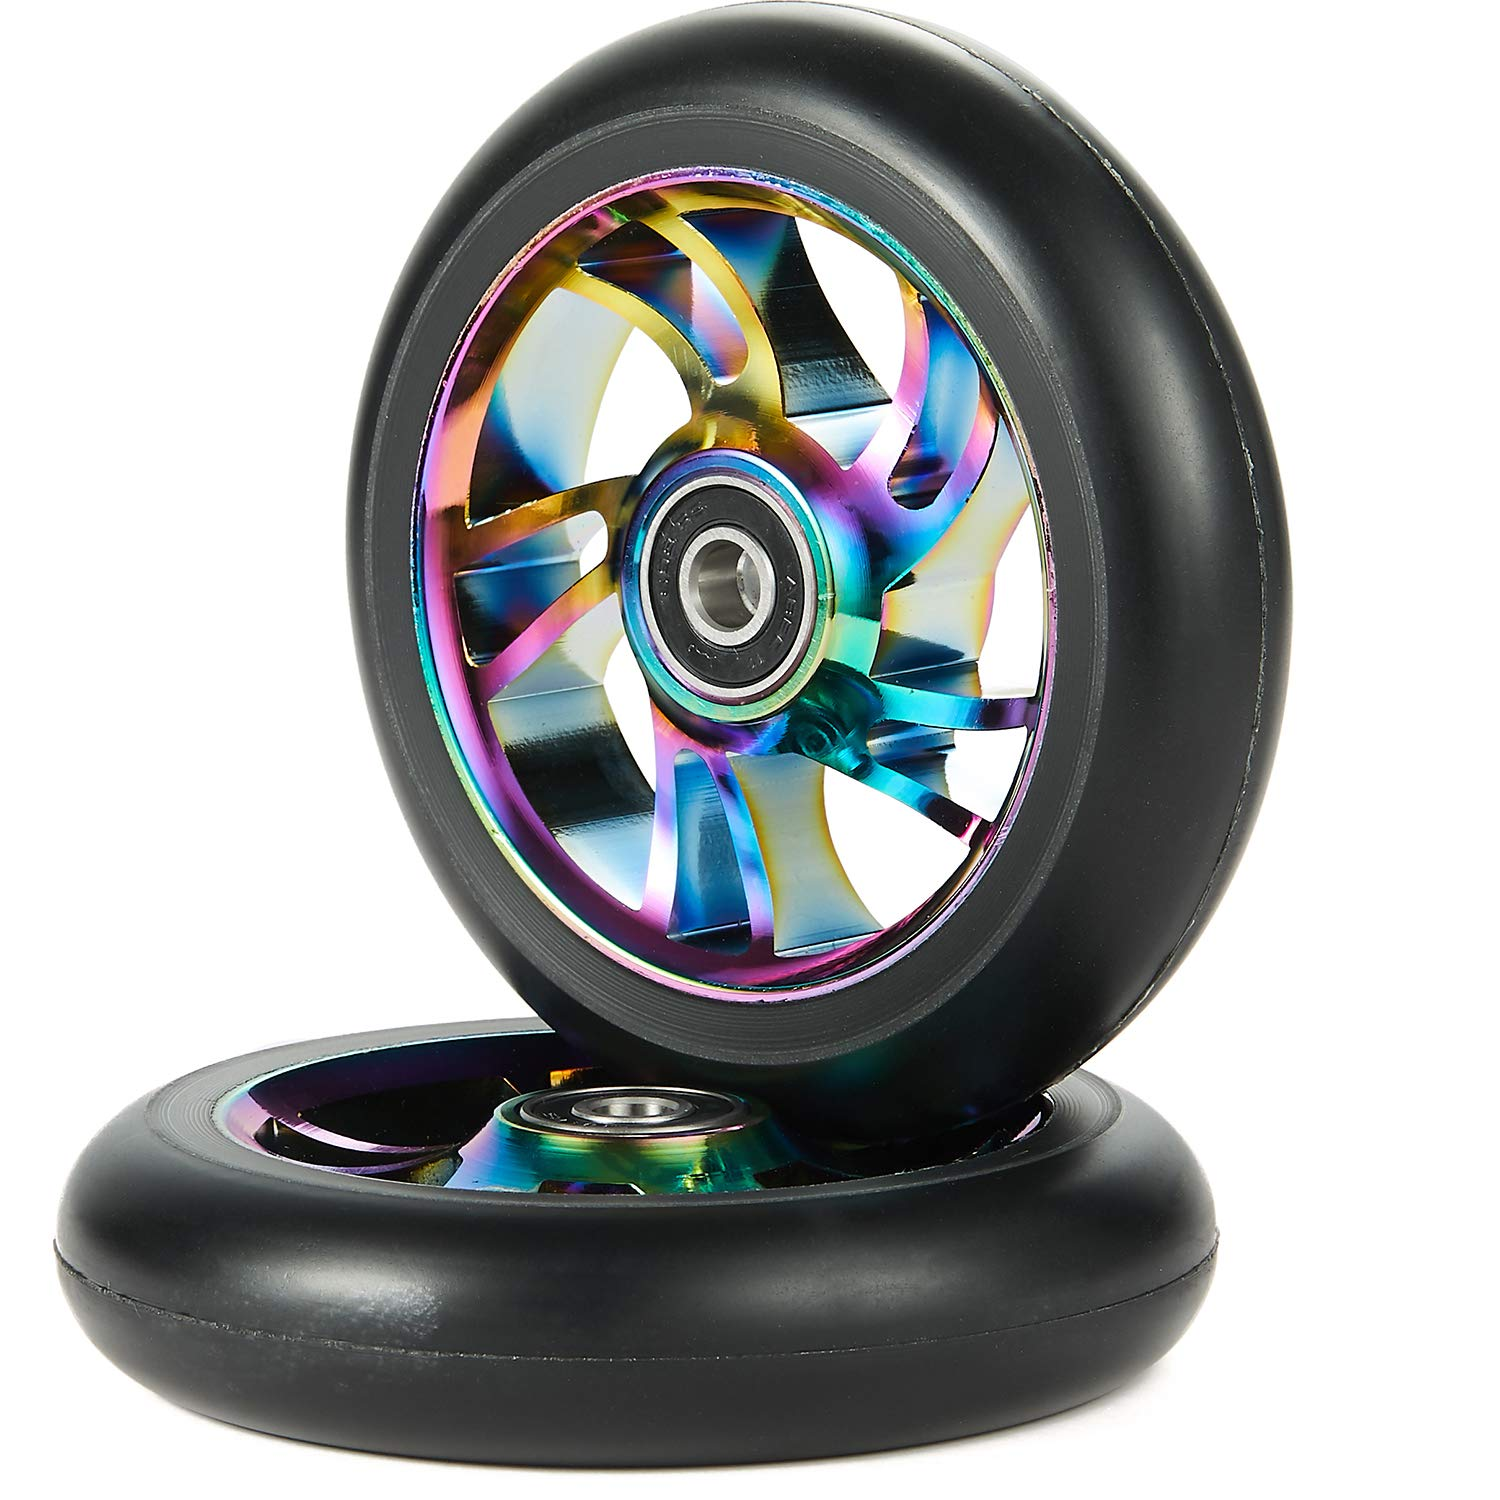 Kutrick 100mm Pro Stunt Scooter Replacement Wheels with ABEC 9 Bearing Come with Complete 2pcs